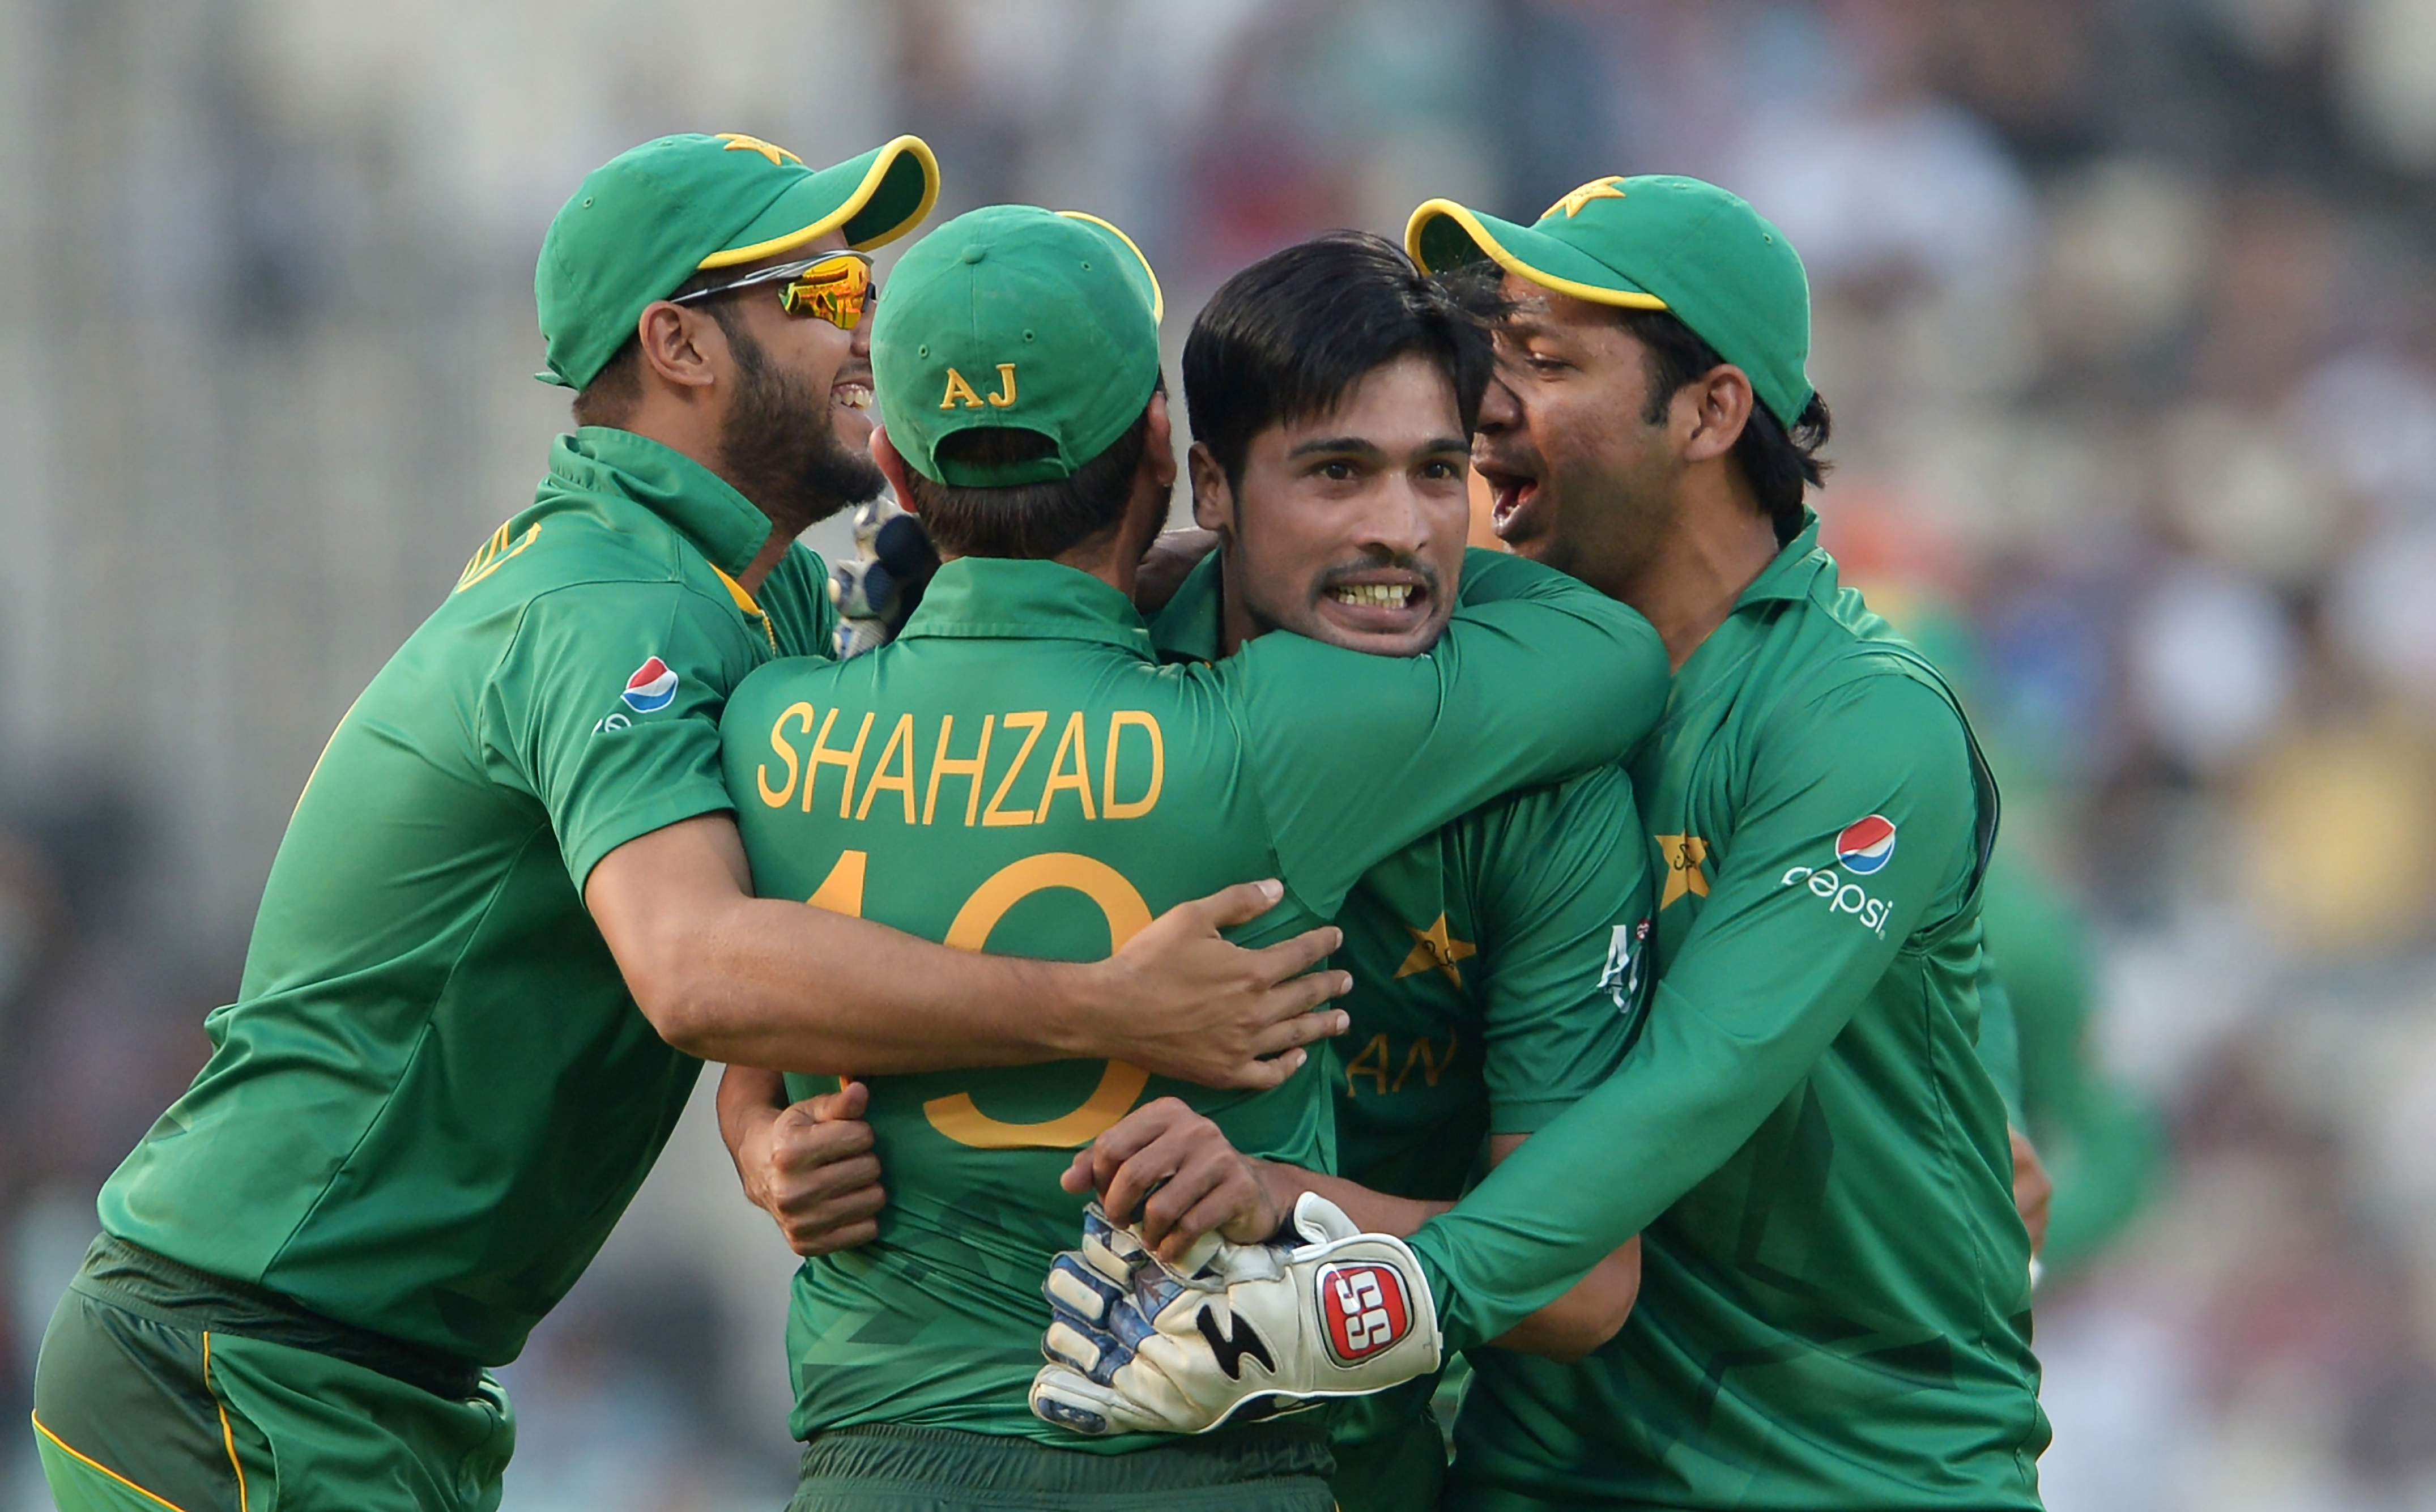 Pakistan's Mohammad Amir(2R)celebrates with teammates after the dismissal of Bangladesh's Soumya Sarkar during the World T20 cricket tournament match between Pakistan and Bangladesh at The Eden Gardens Cricket Stadium in Kolkata on March 16, 2016.  / AFP / Dibyangshu SARKAR